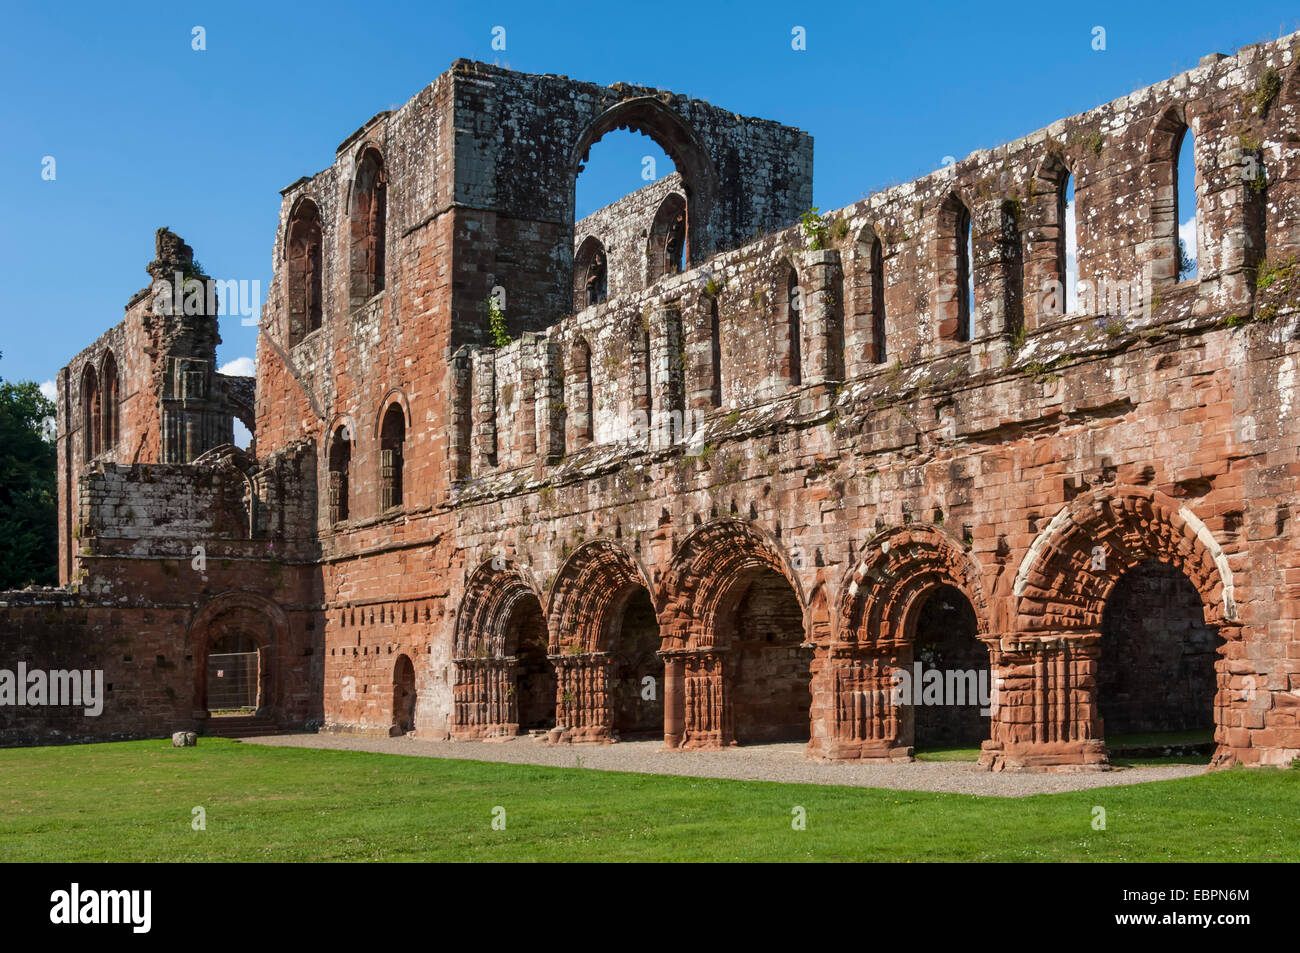 Elaborate carved stone arches, 12th century St. Mary of Furness Cistercian Abbey, Cumbria, England, United Kingdom, - Stock Image